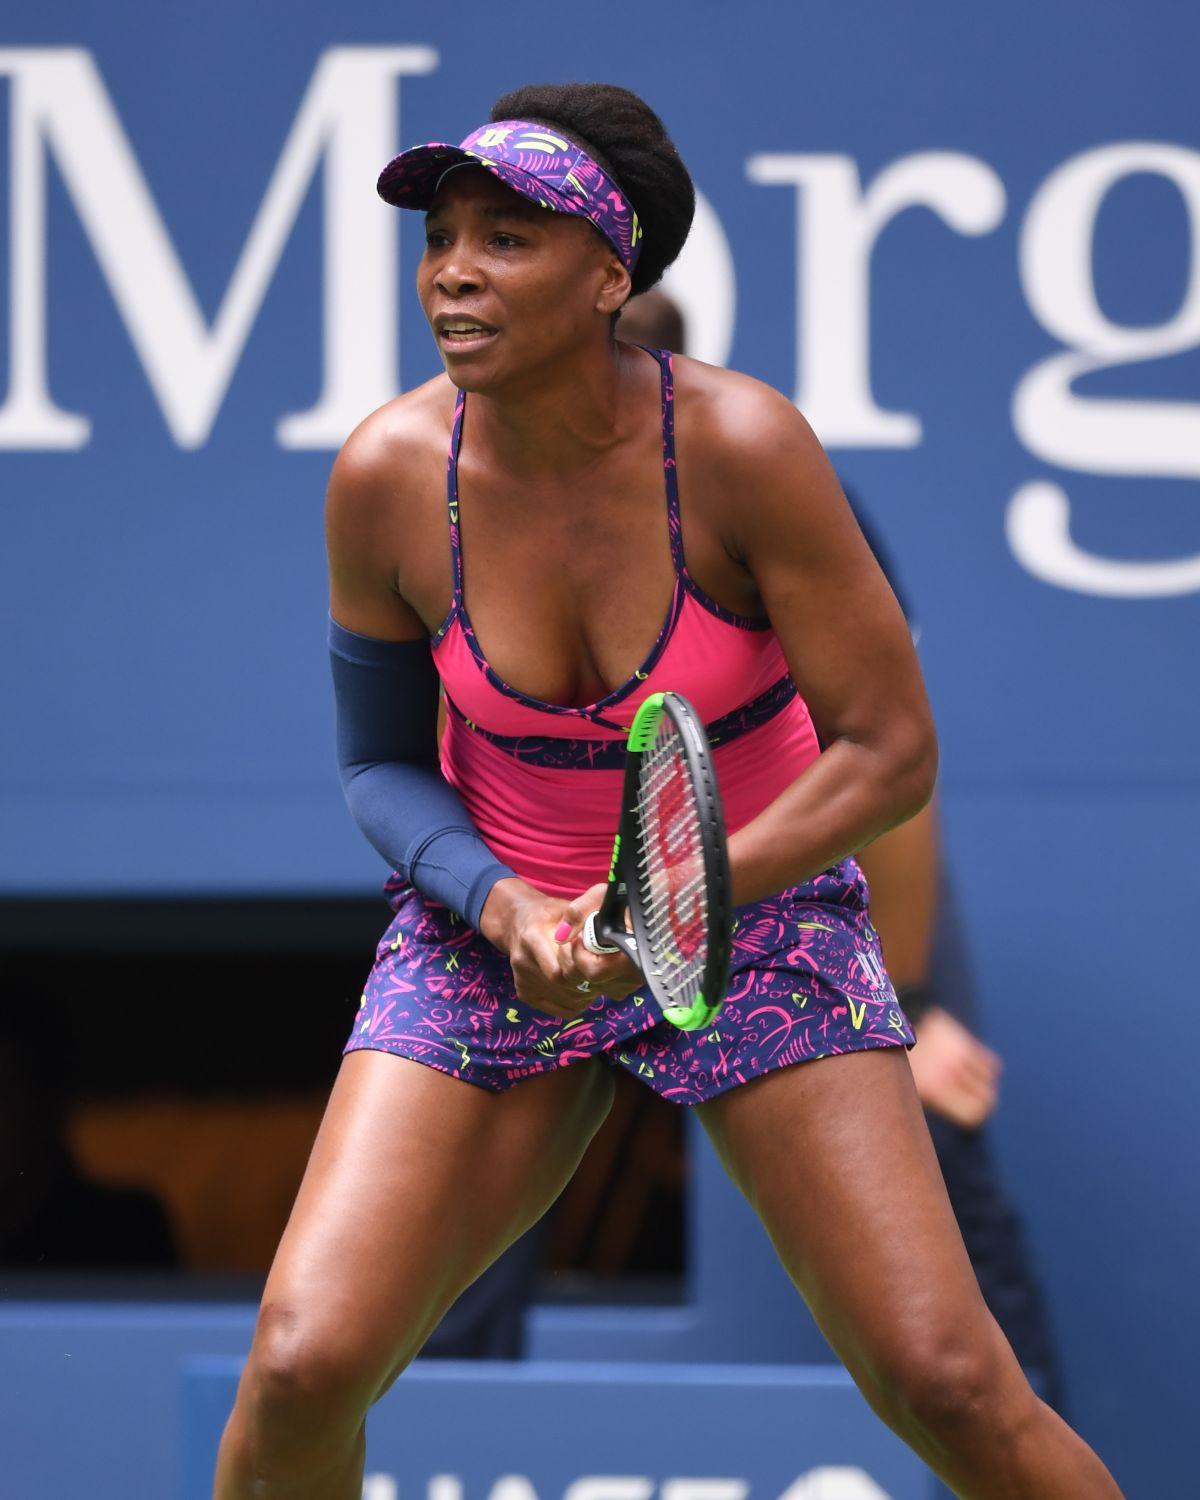 venus-williams-nipples